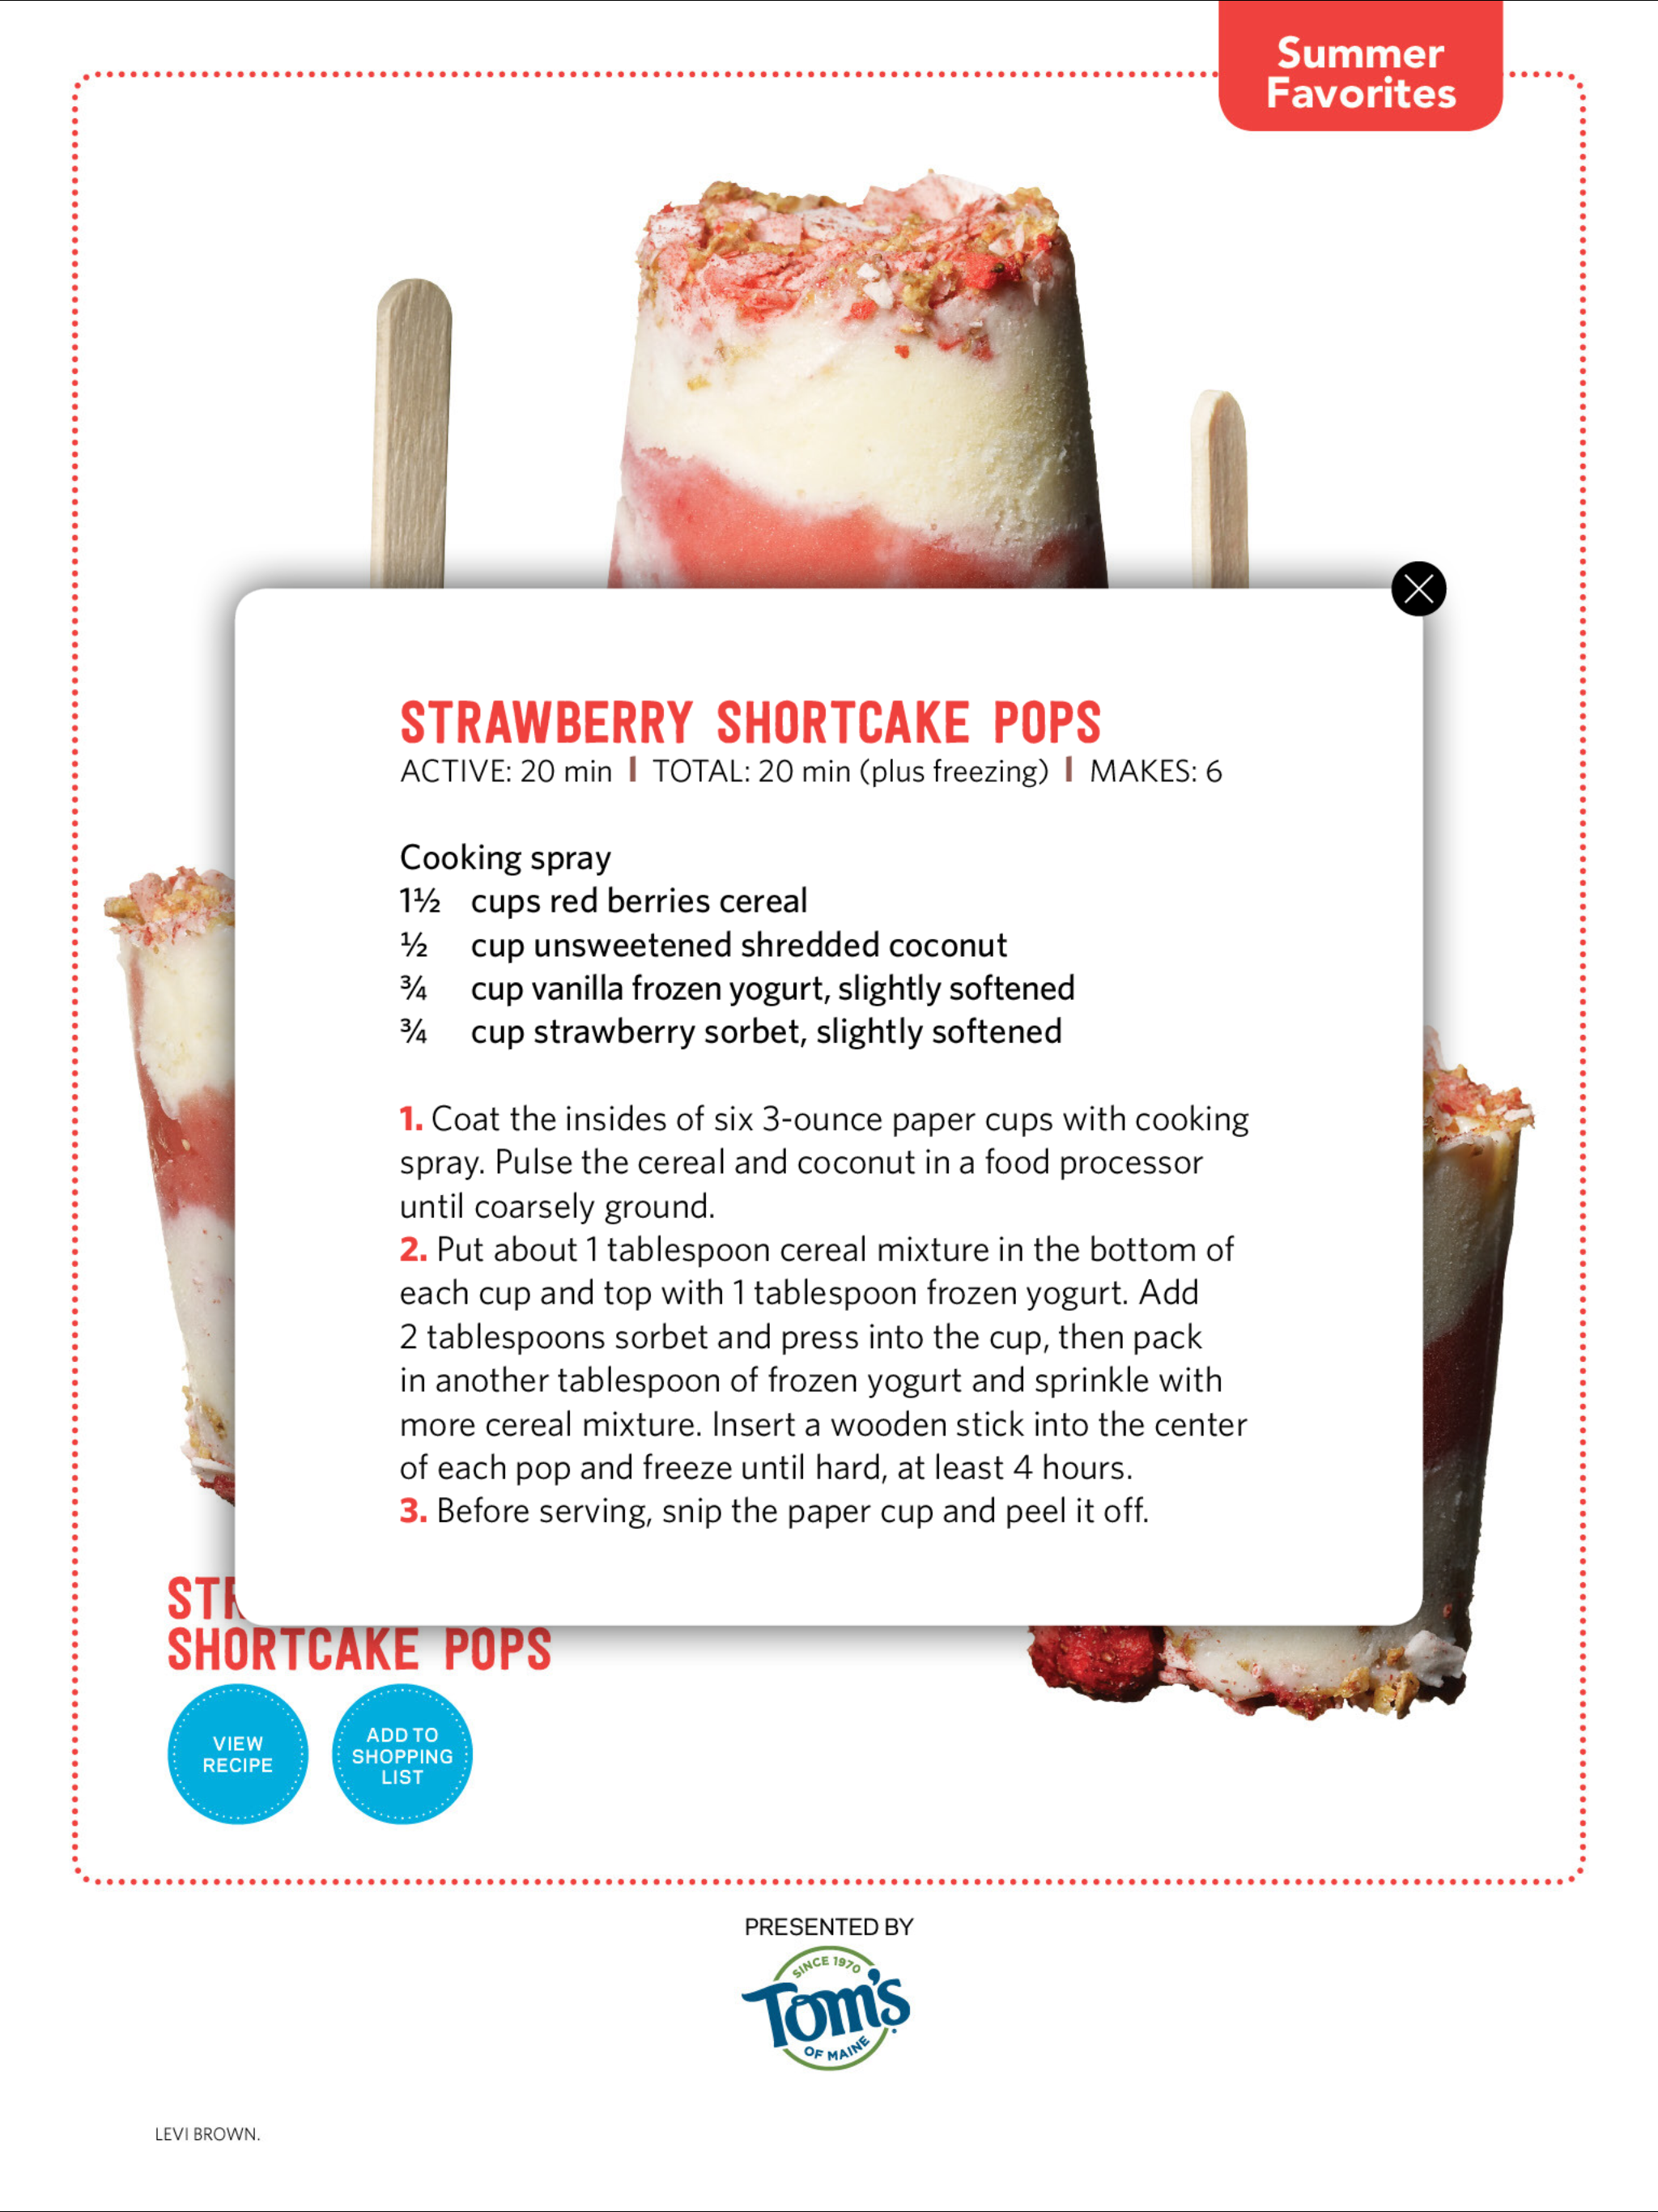 Pin by erika yagel on desserts pinterest recipe cards and recipes strawberry shortcake pop website frozen recipe cards summer food food network magazine food ideas forumfinder Choice Image